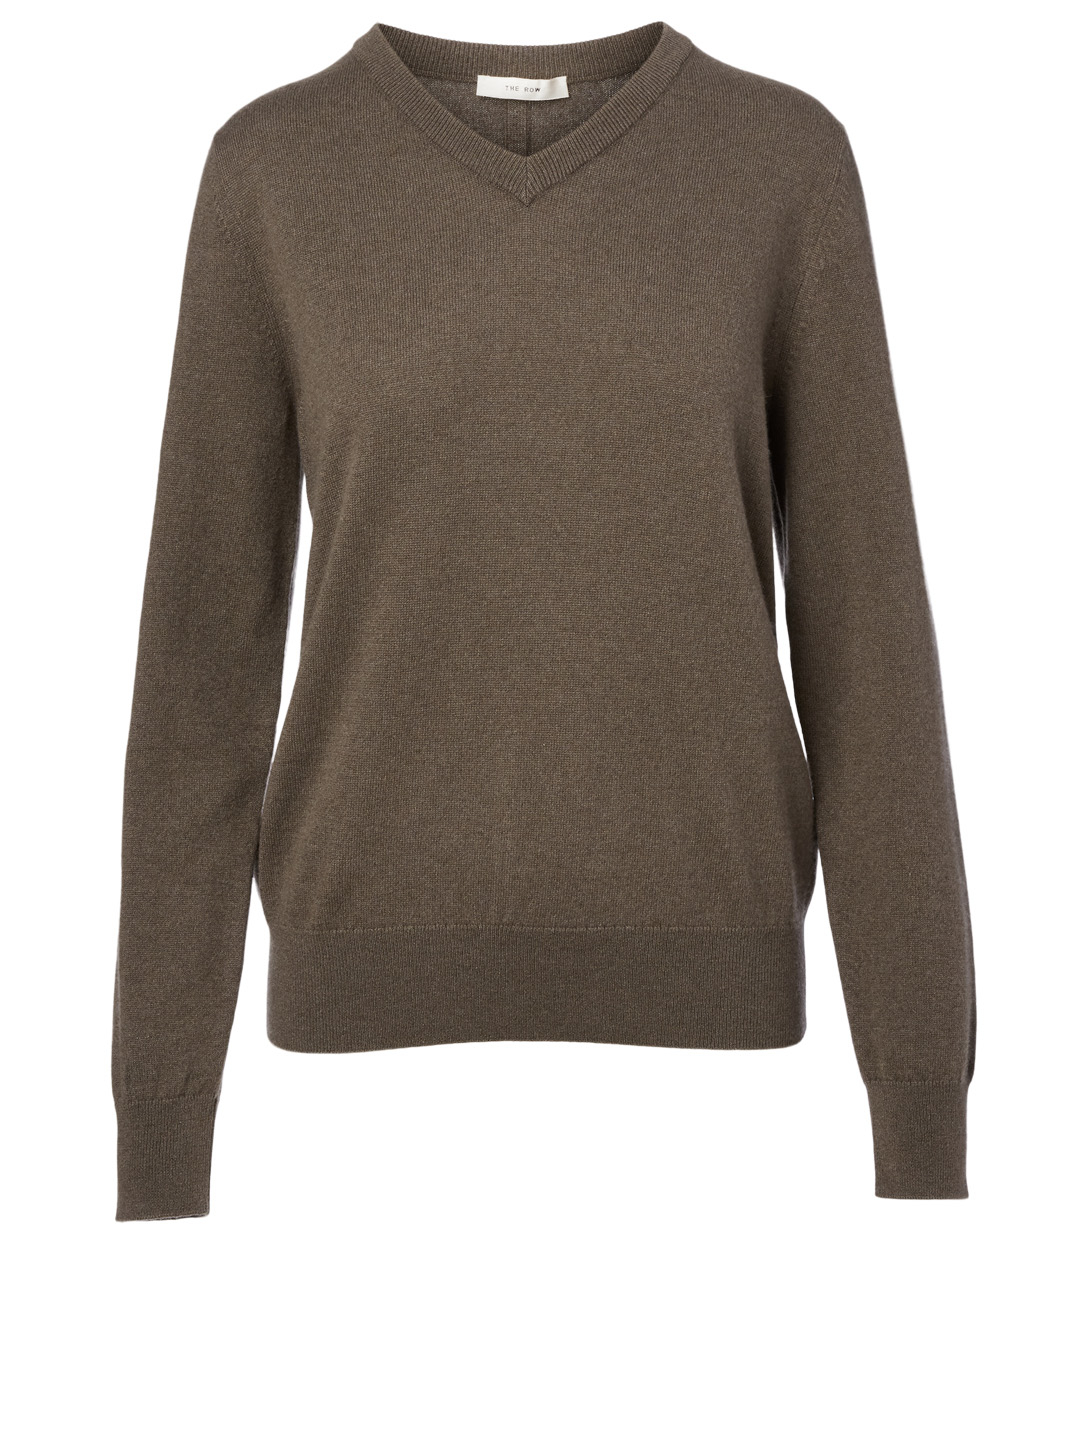 THE ROW Maley Cashmere Sweater Women's Grey